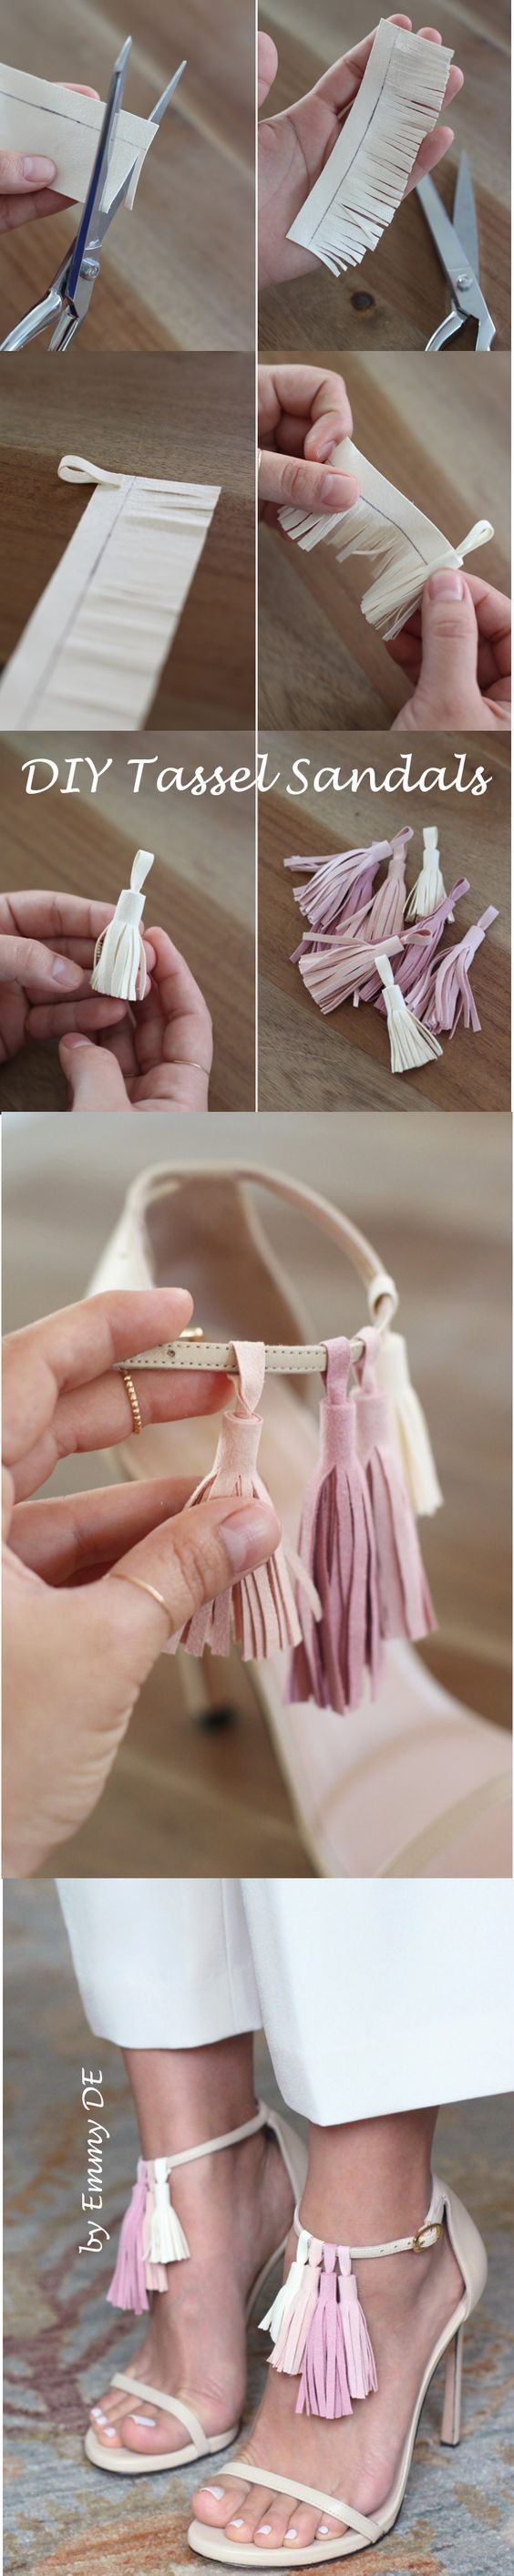 Quasten für Sandletten, einfach herzustellen und austauschbar - in verschiedenen Farben, immer passend zum Outfit / DIY Tassel Sandals (removable Tassels in different colors to match every outfit)